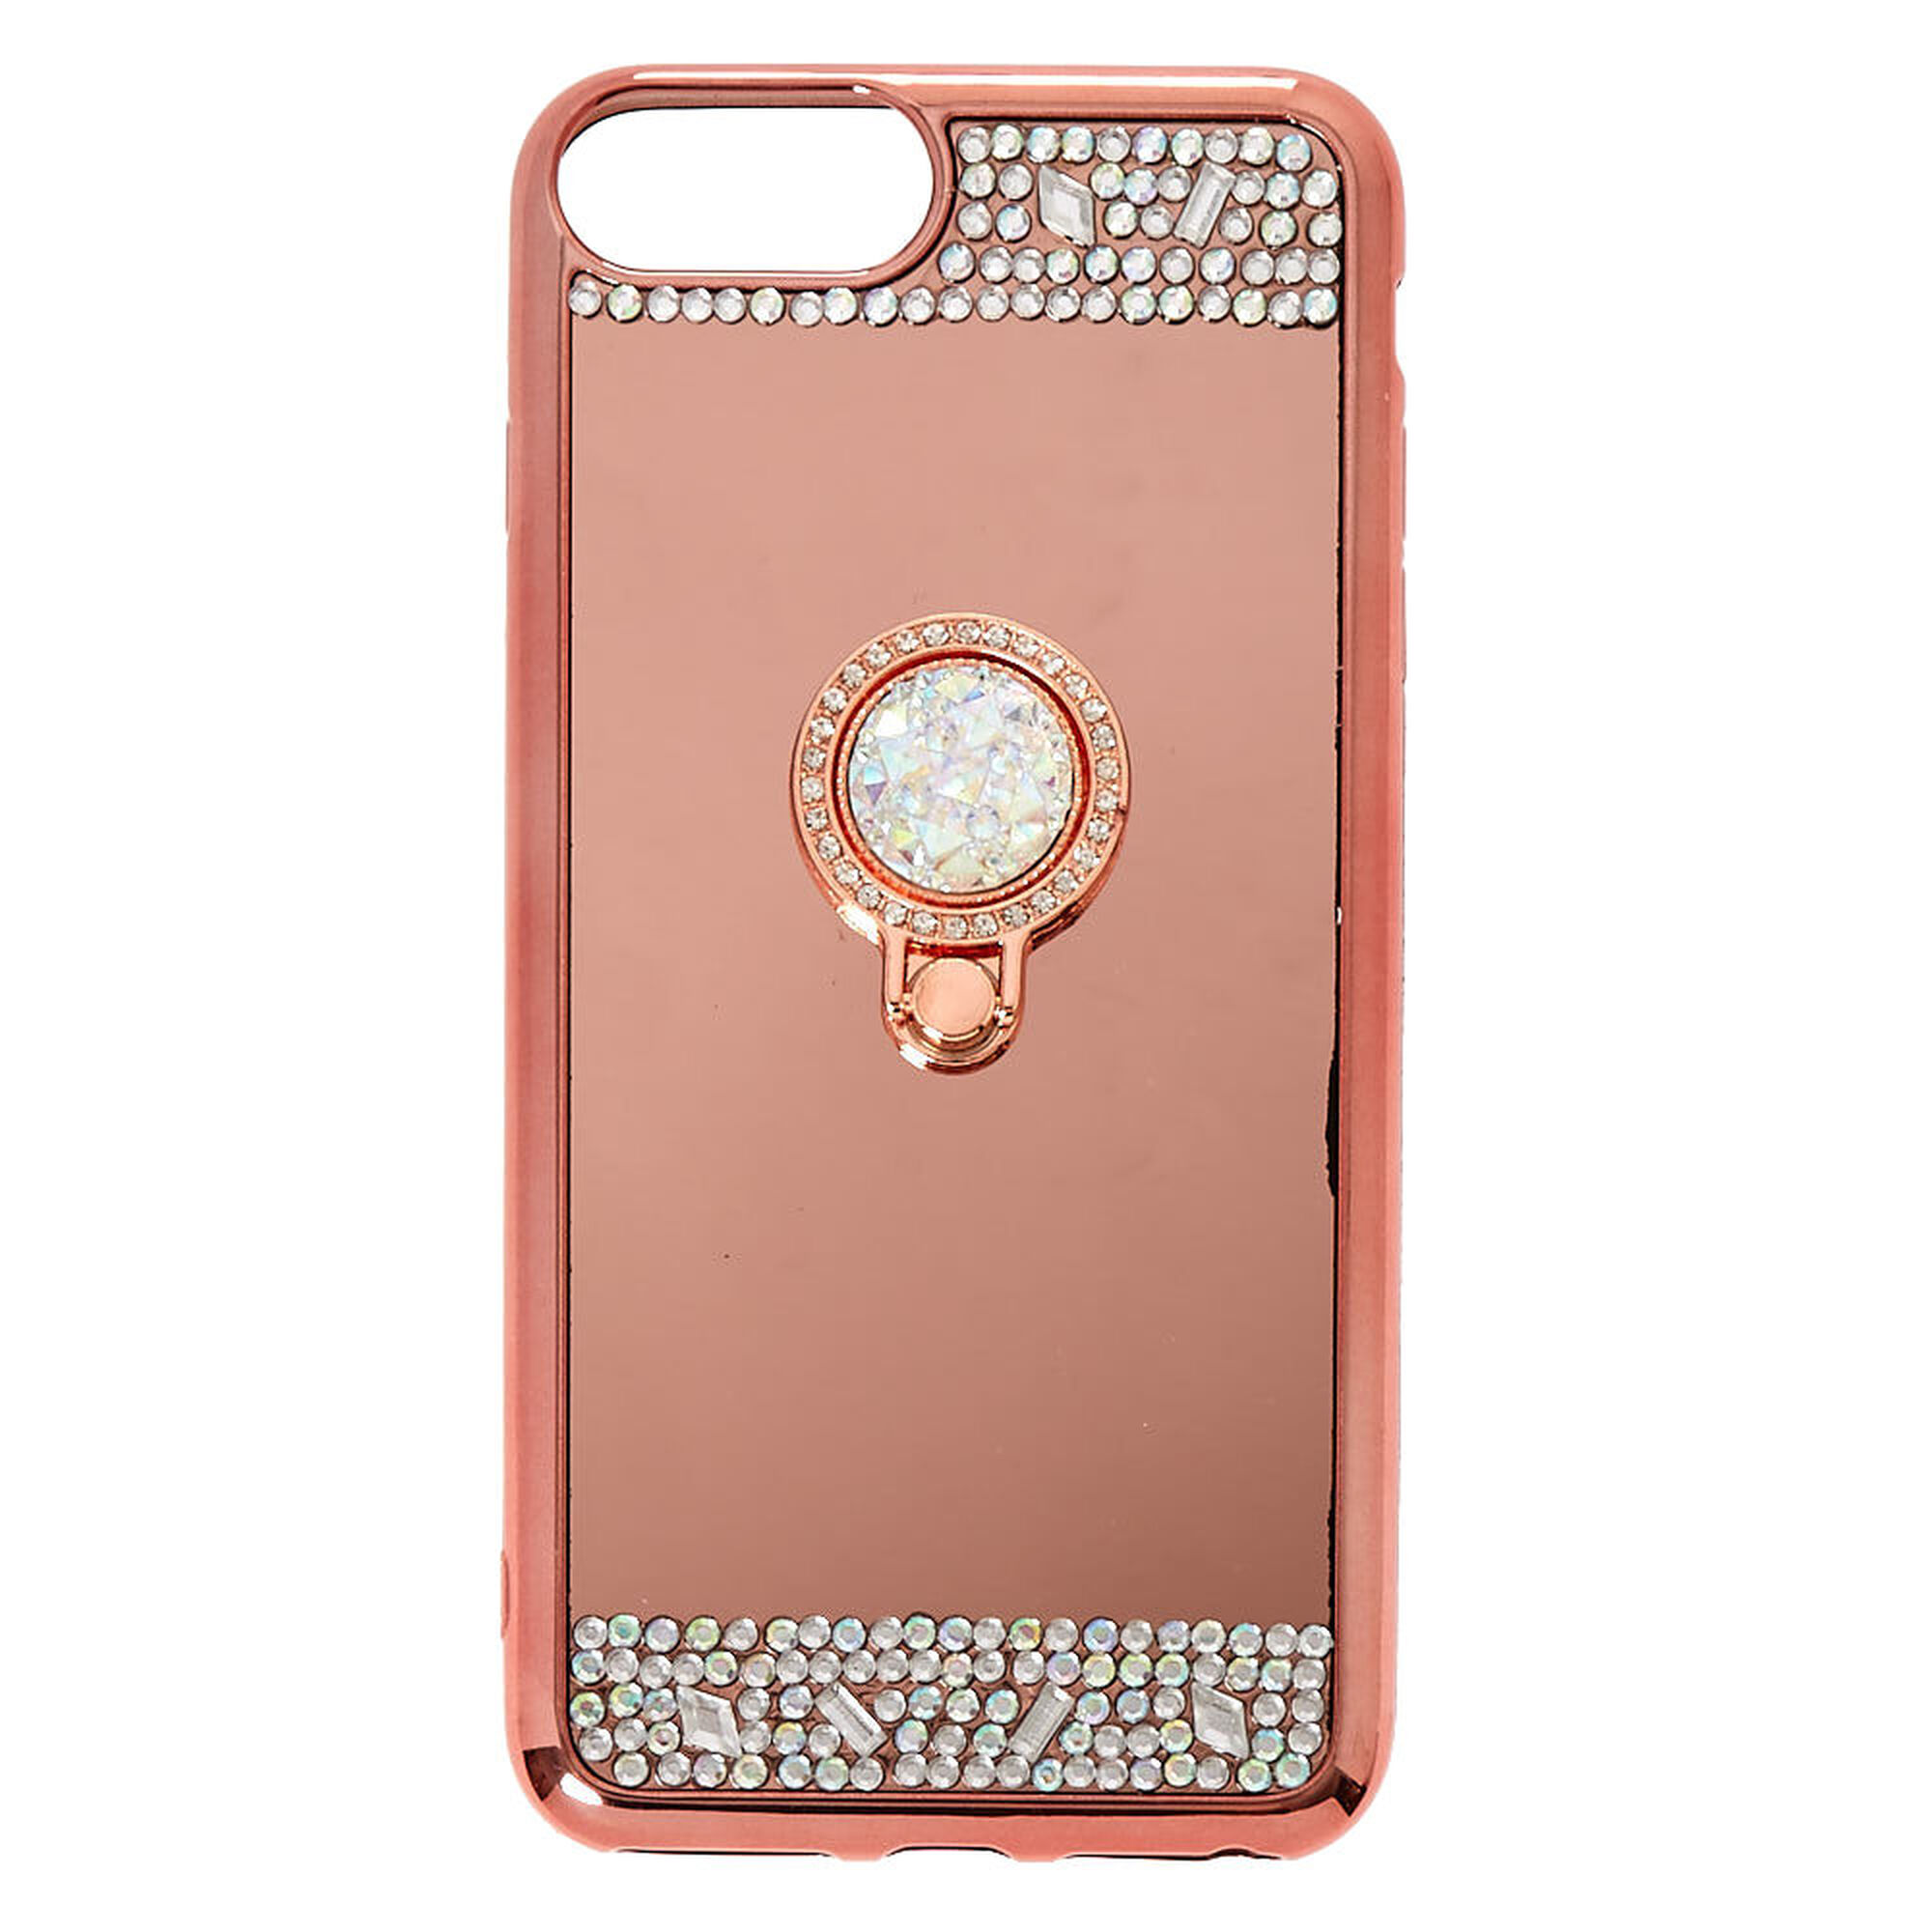 reputable site f7eec 11a4b Rose Gold Mirrored Ring Stand Phone Case - Fits iPhone 6/7/8